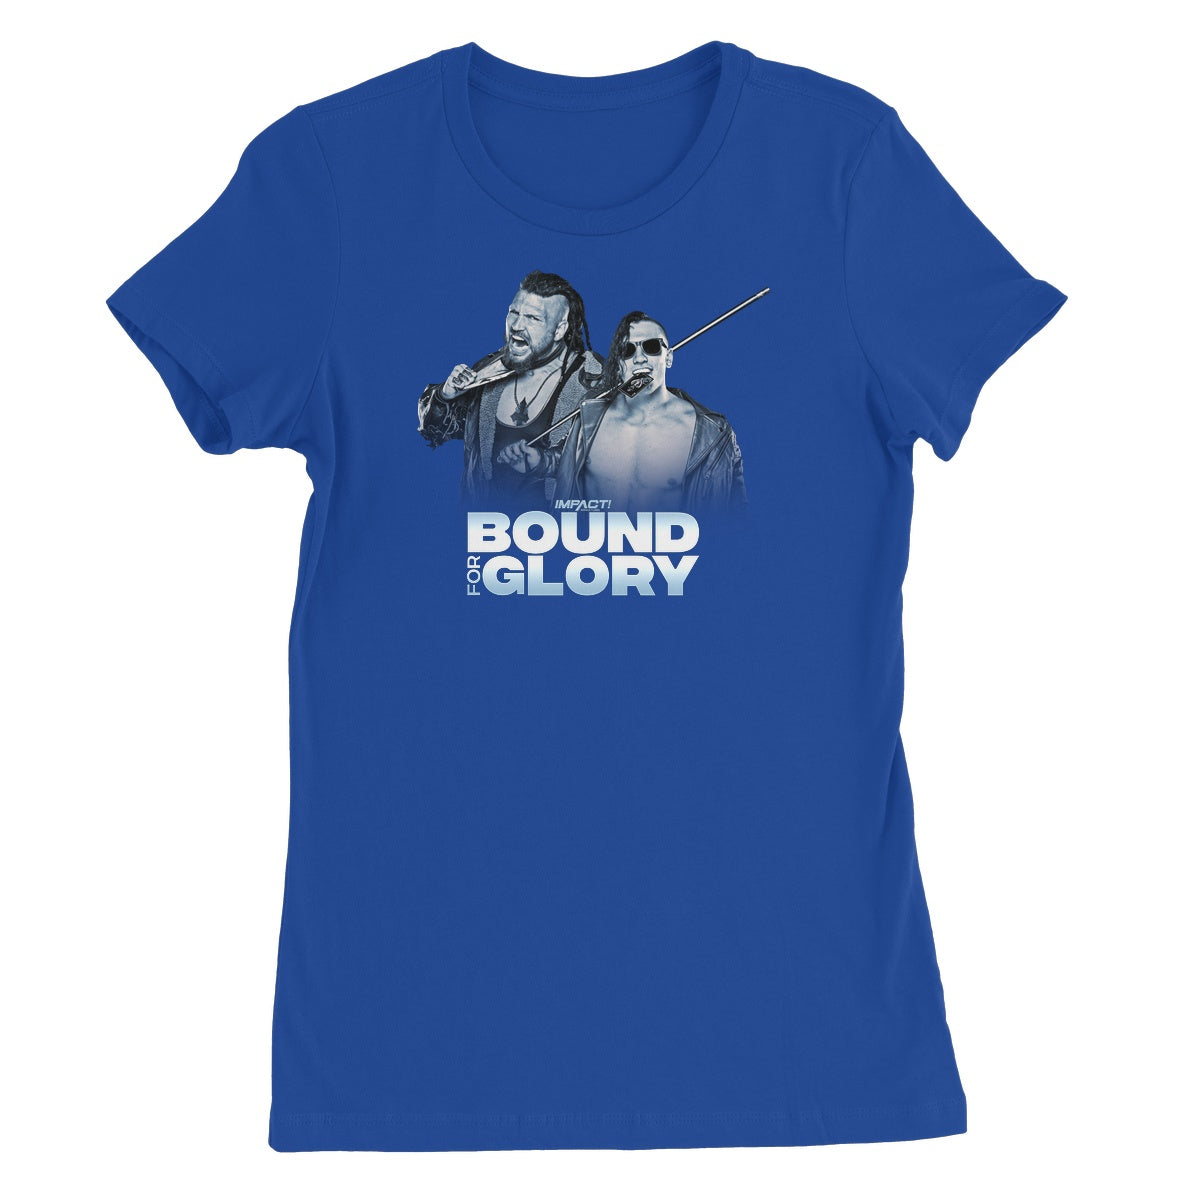 Bound For Glory 2020 - Fulton/Ace Women's Favourite T-Shirt